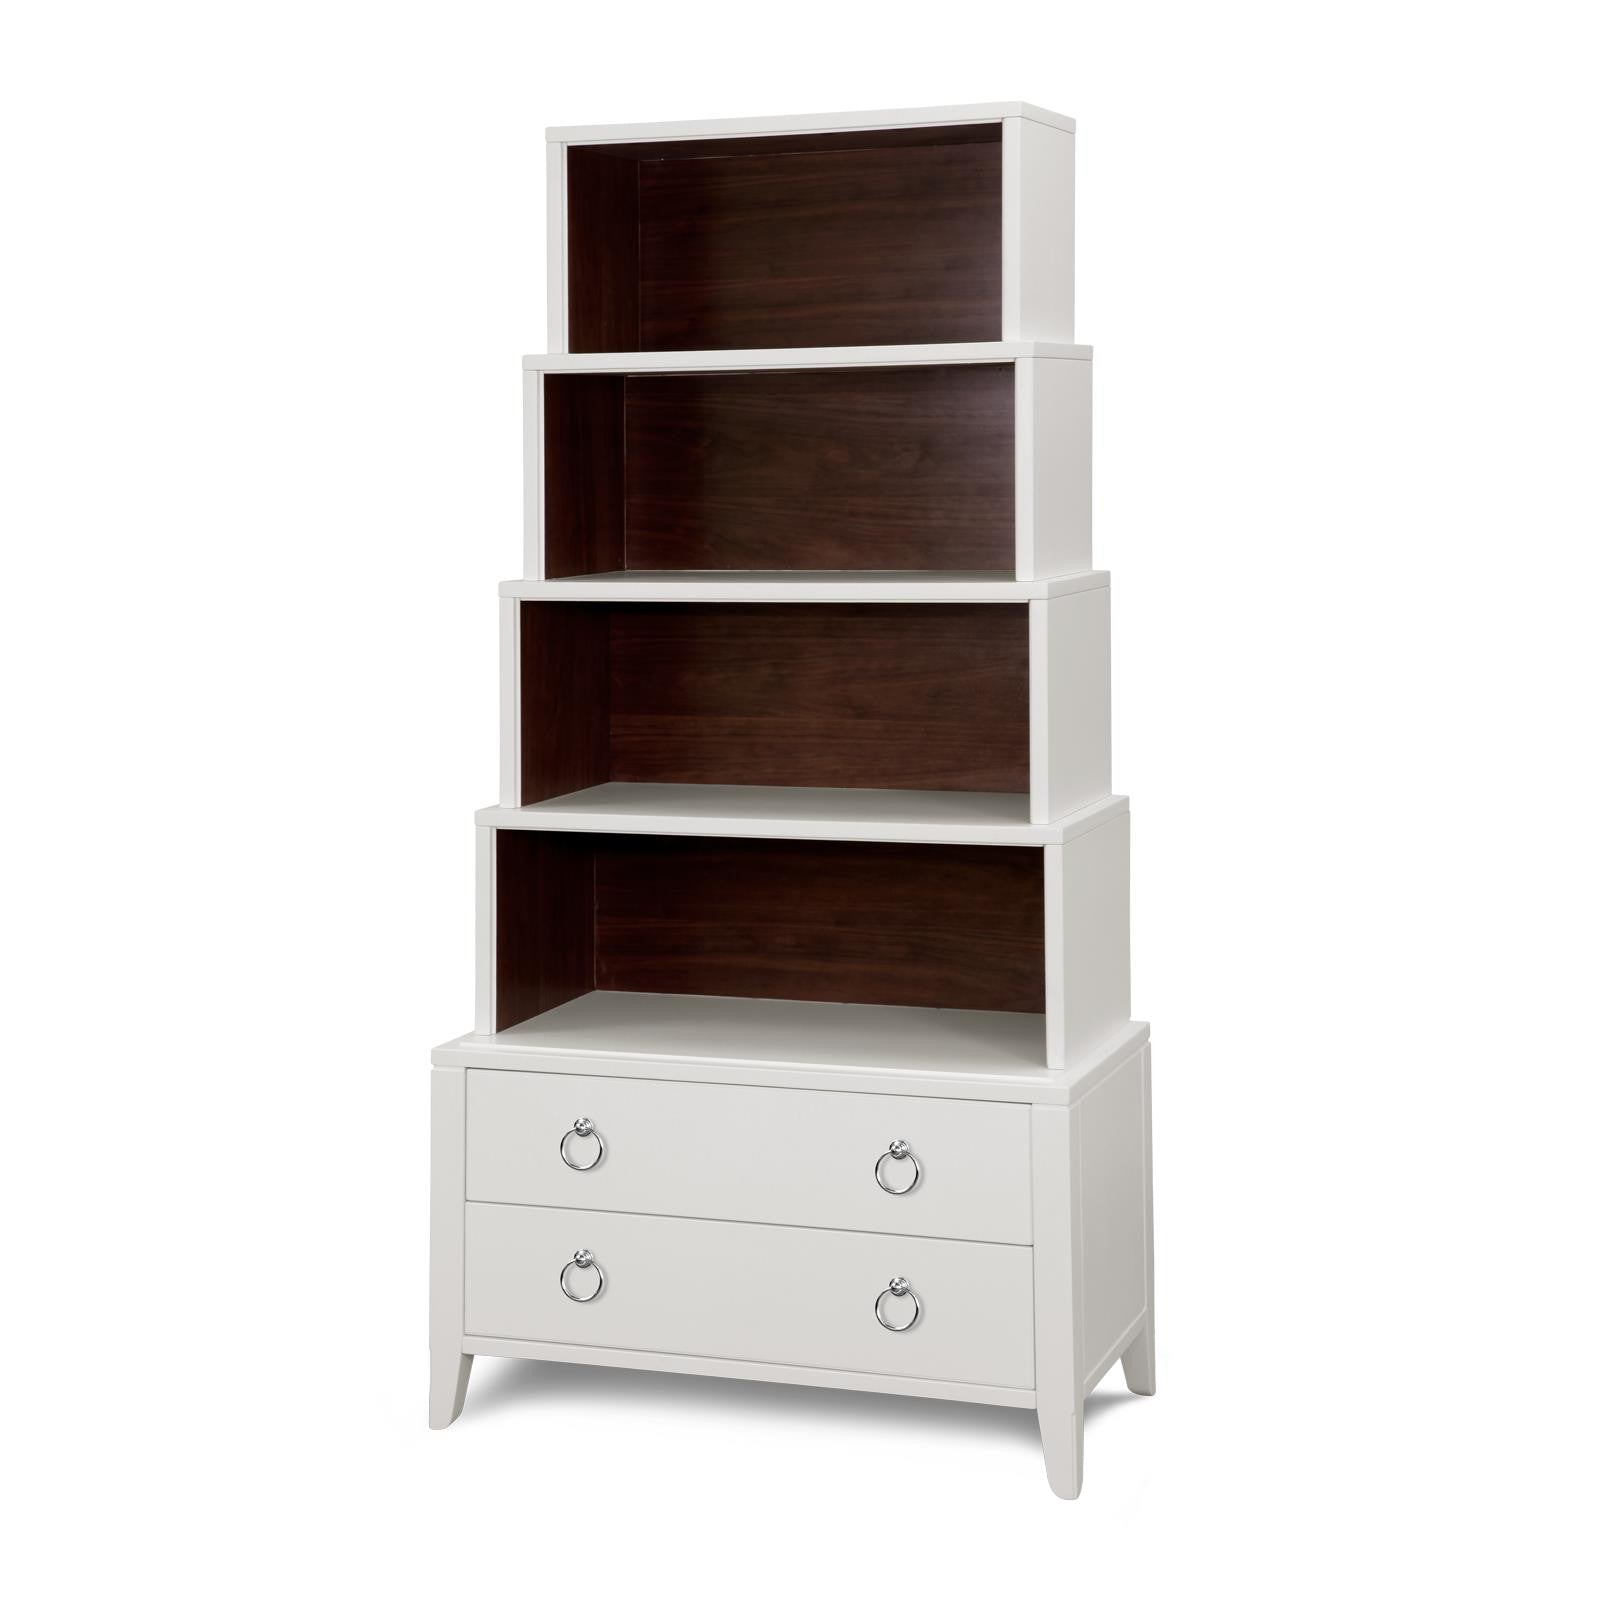 Piedmont Display Case, White